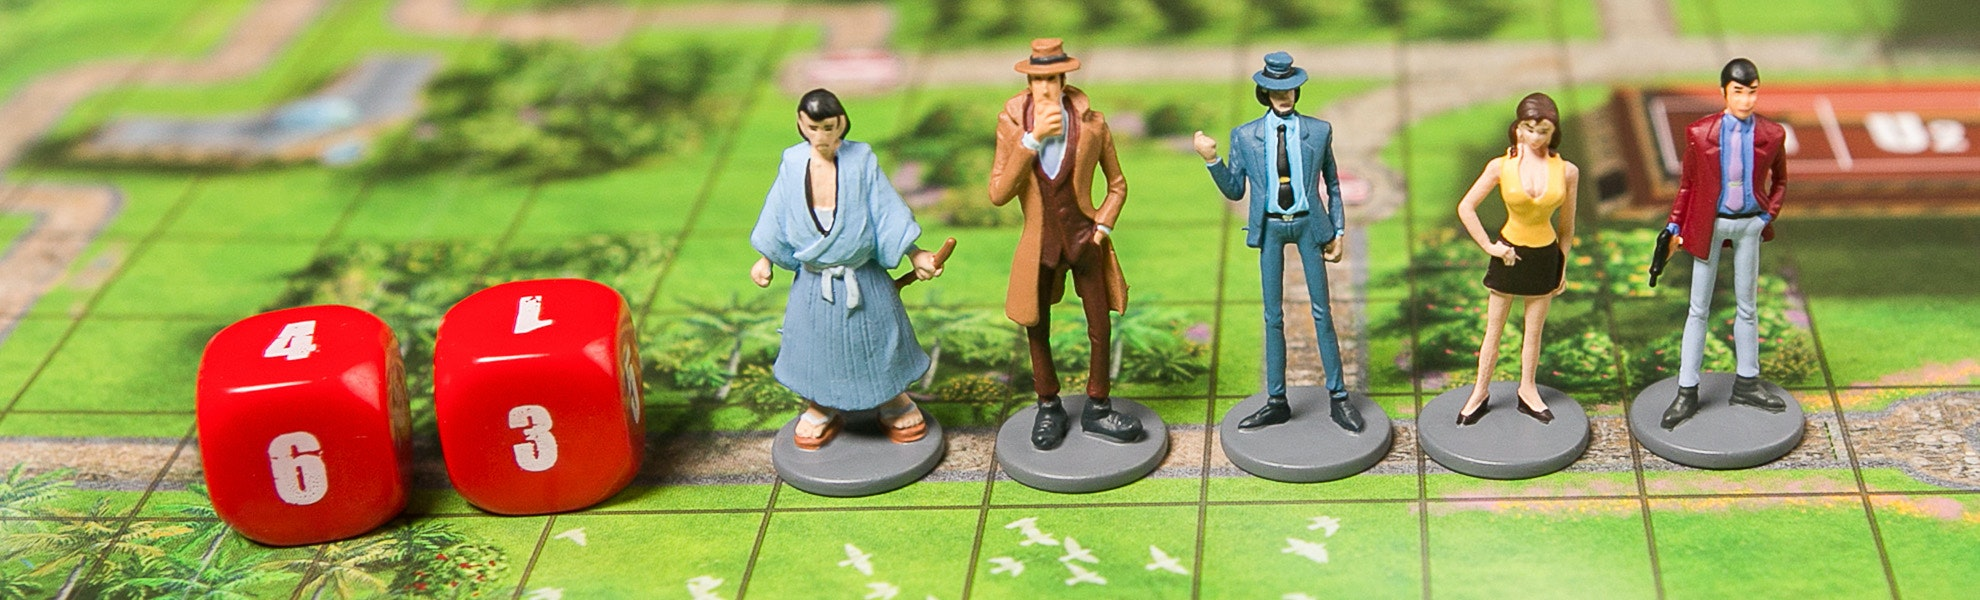 Lupin the 3rd Board Game Bundle